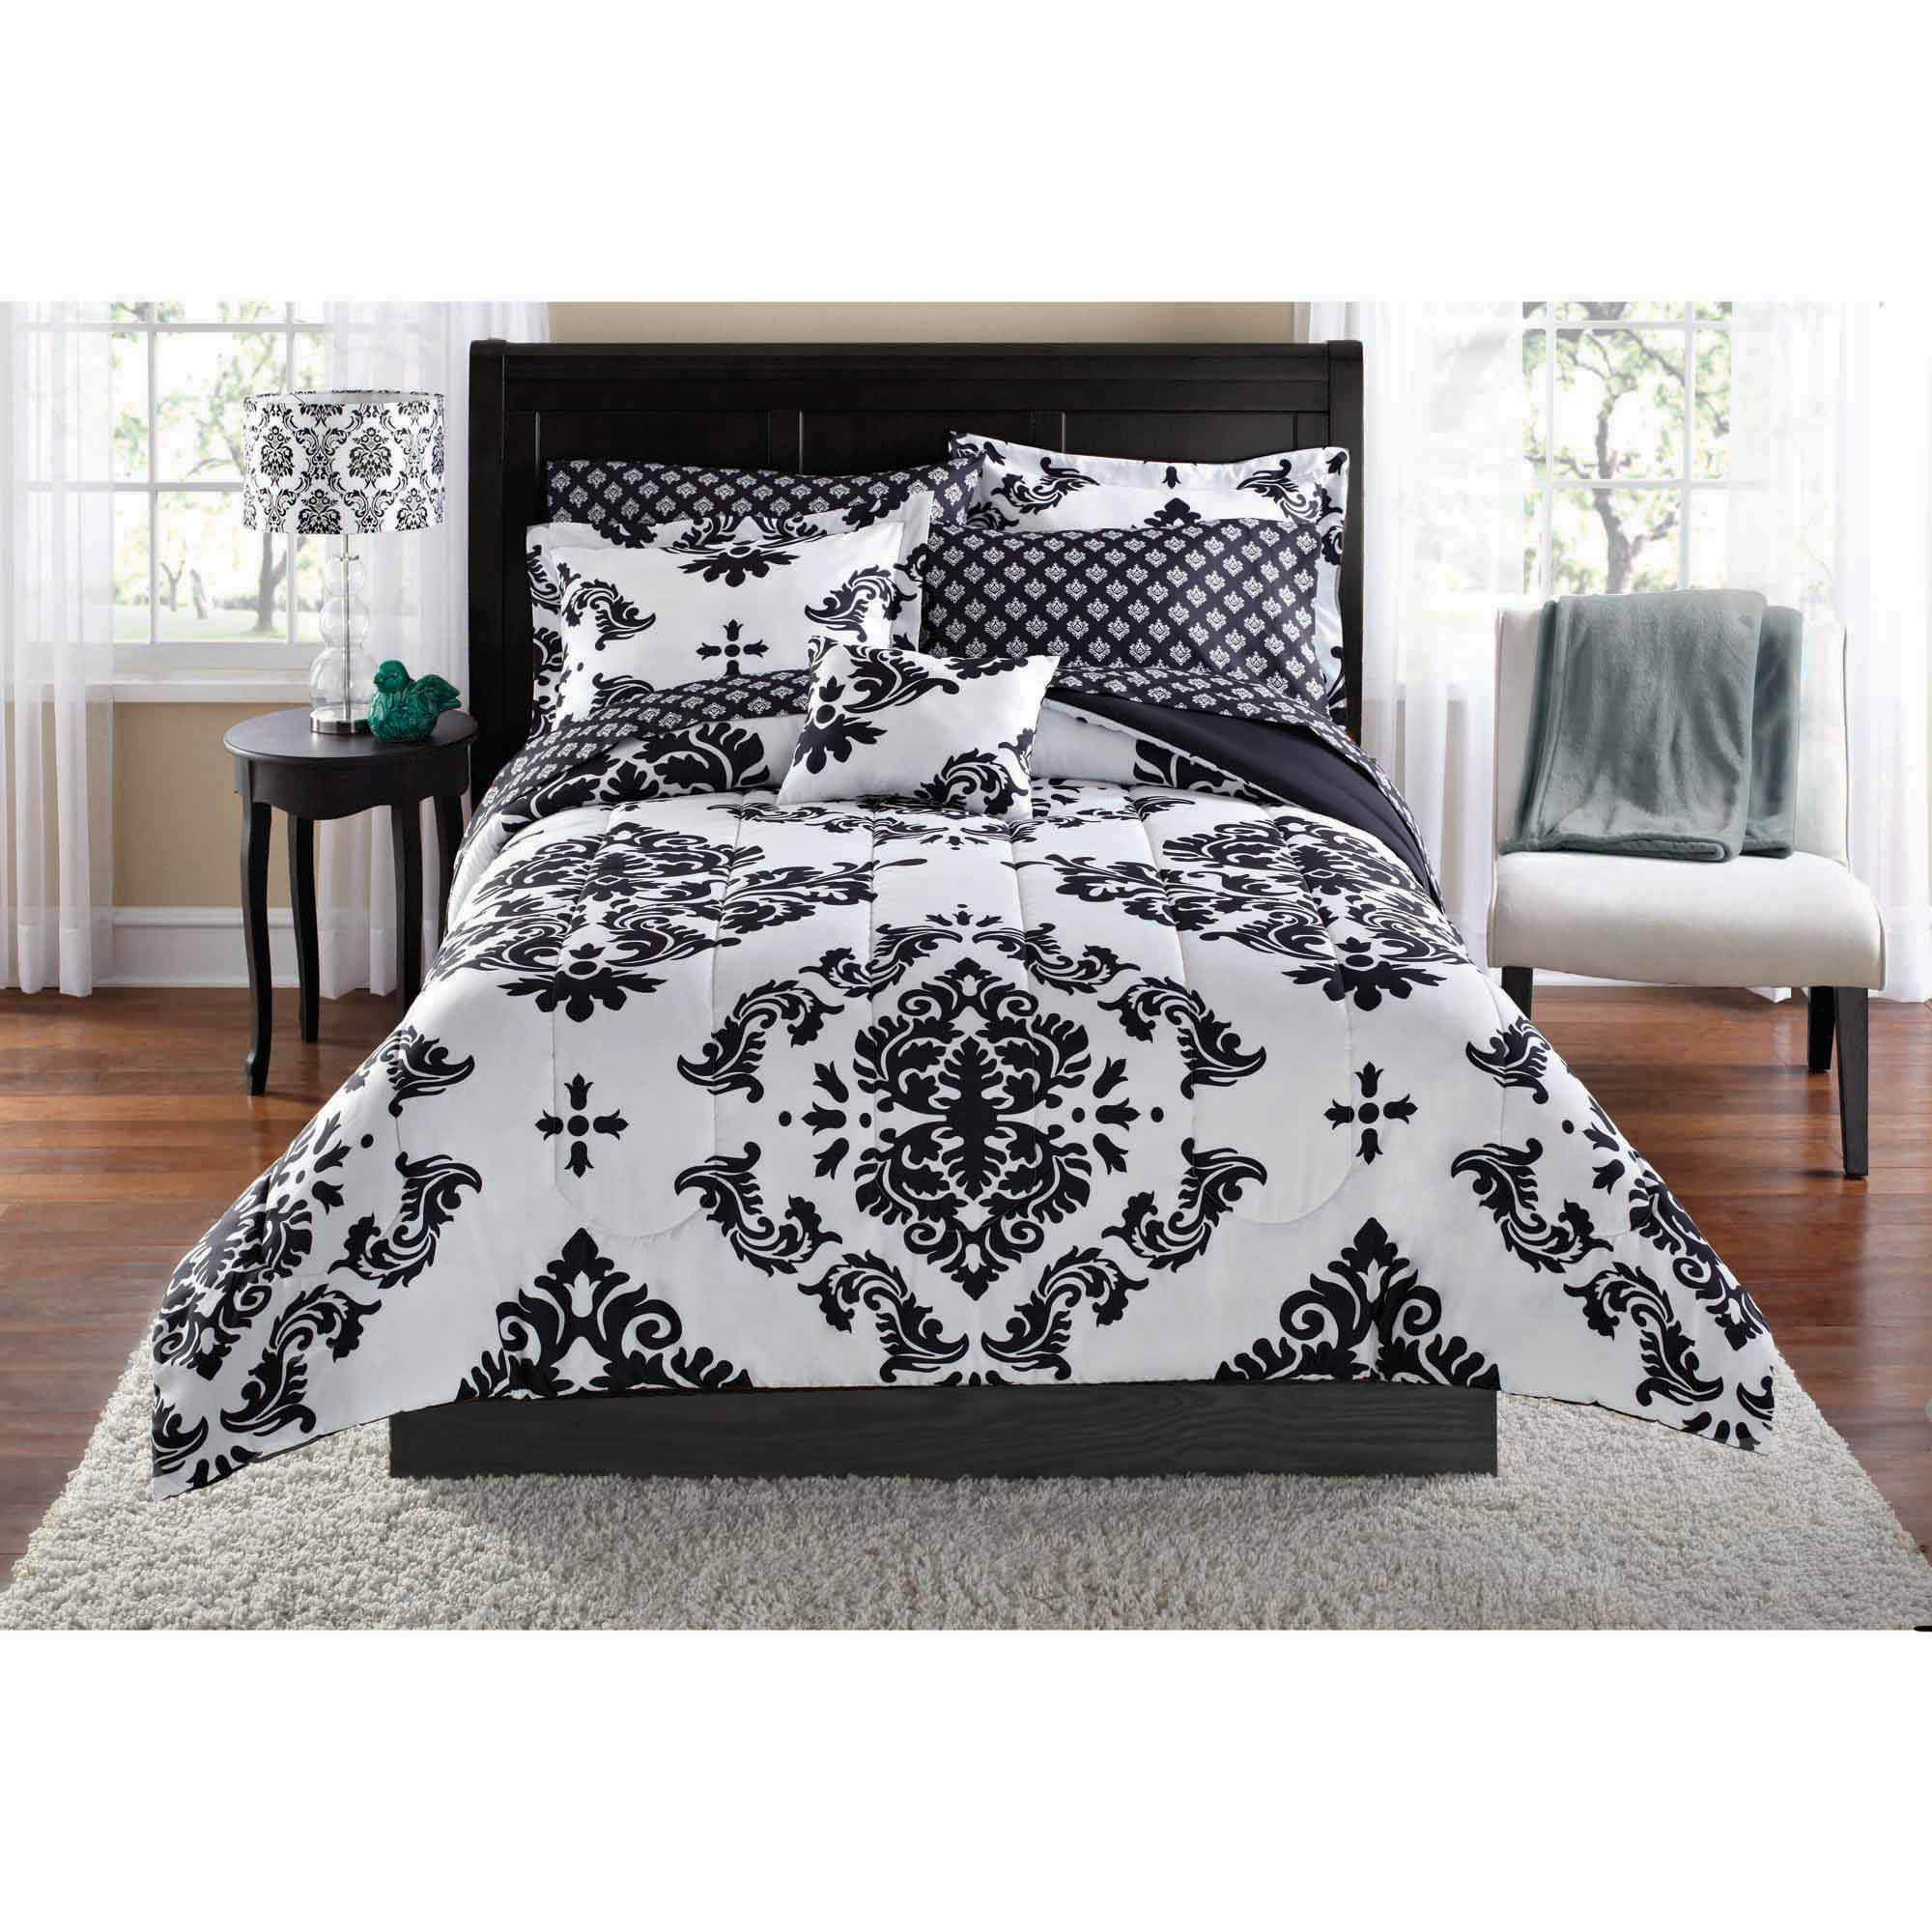 boys mega dorm comforter for nav made home college pages american comforters bedding